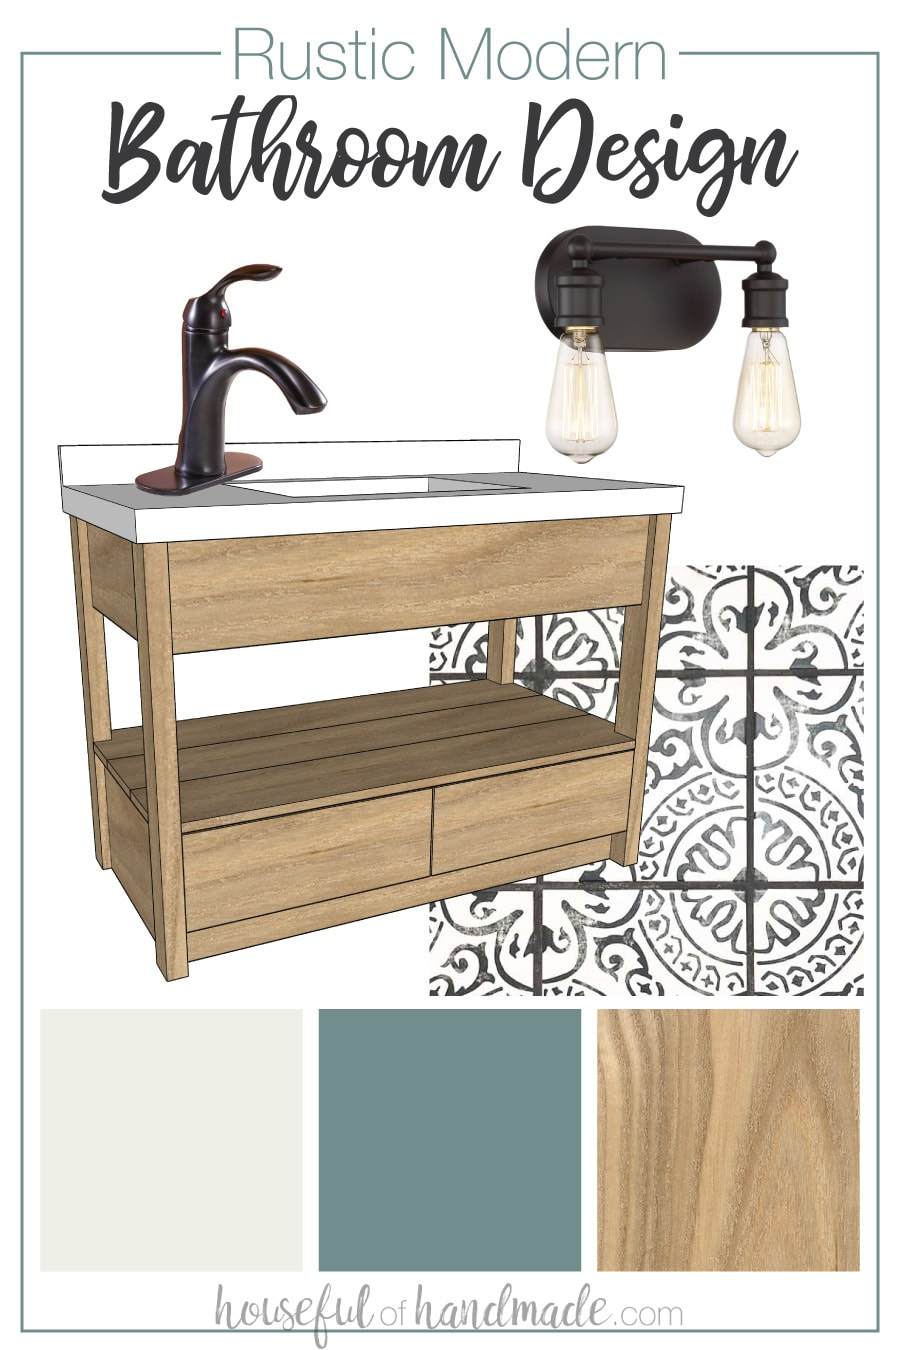 Rustic modern bathroom design for our small guest bathroom.